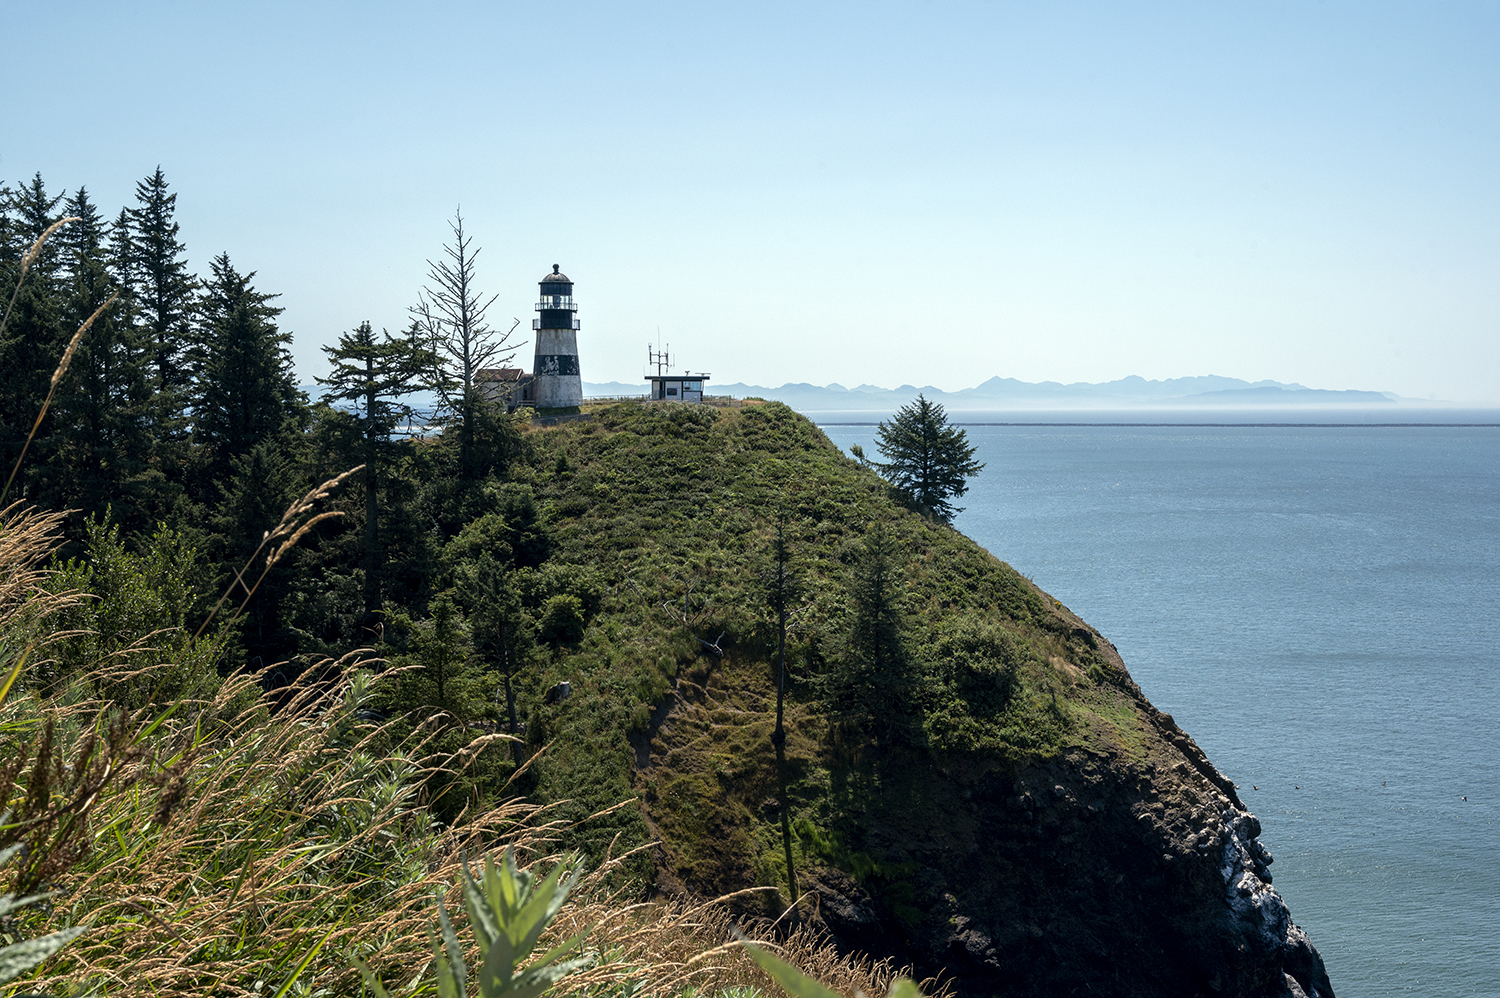 The oldest lighthouse in Washington, Cape Disappointment Lighthouse, opened in 1856, standing at 53 feet tall and used to provide navigational aid to marine traffic entering from the south. Uniquely, a 1,600-pound bronze bell once issued a fog warning but was discontinued shortly after due to the discovery of dead spots. Several renovations occurred over decades, including updated rotational lights in 1950, full automation in 1998 with lights shining 17 miles out to sea, and a new black and white stripe paint design. (Image: Rachael Jones / Seattle Refined)